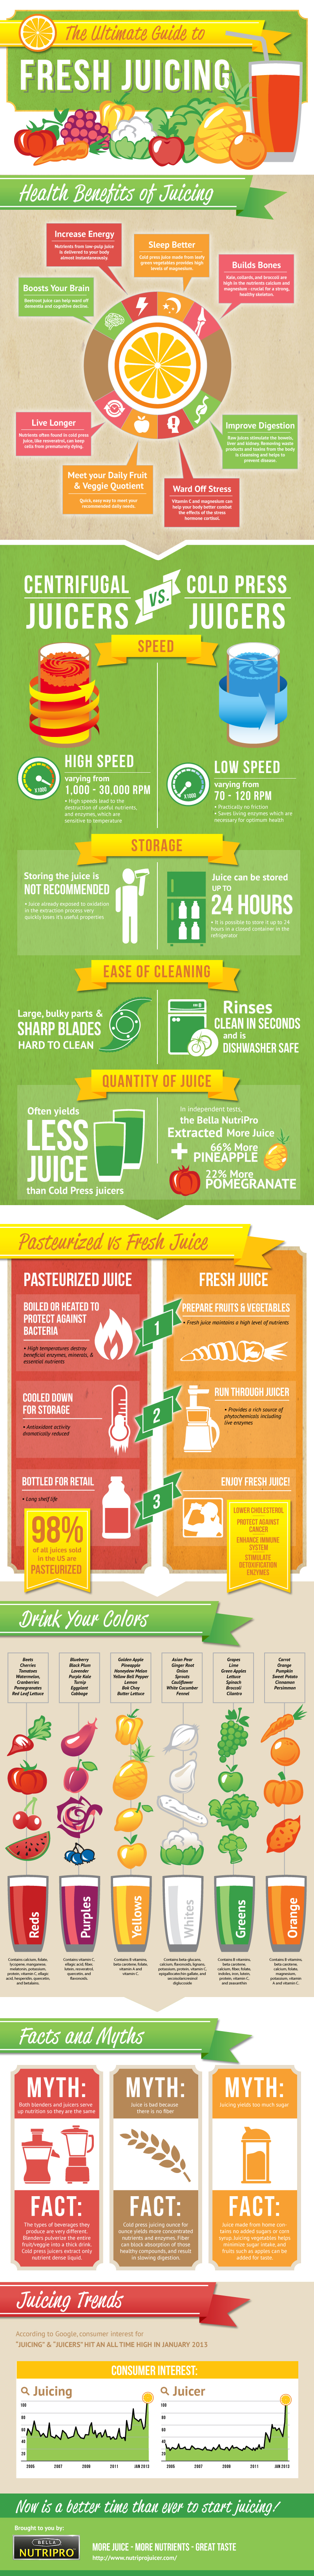 Ultimate_Guide_Fresh_Juicing_Infographic